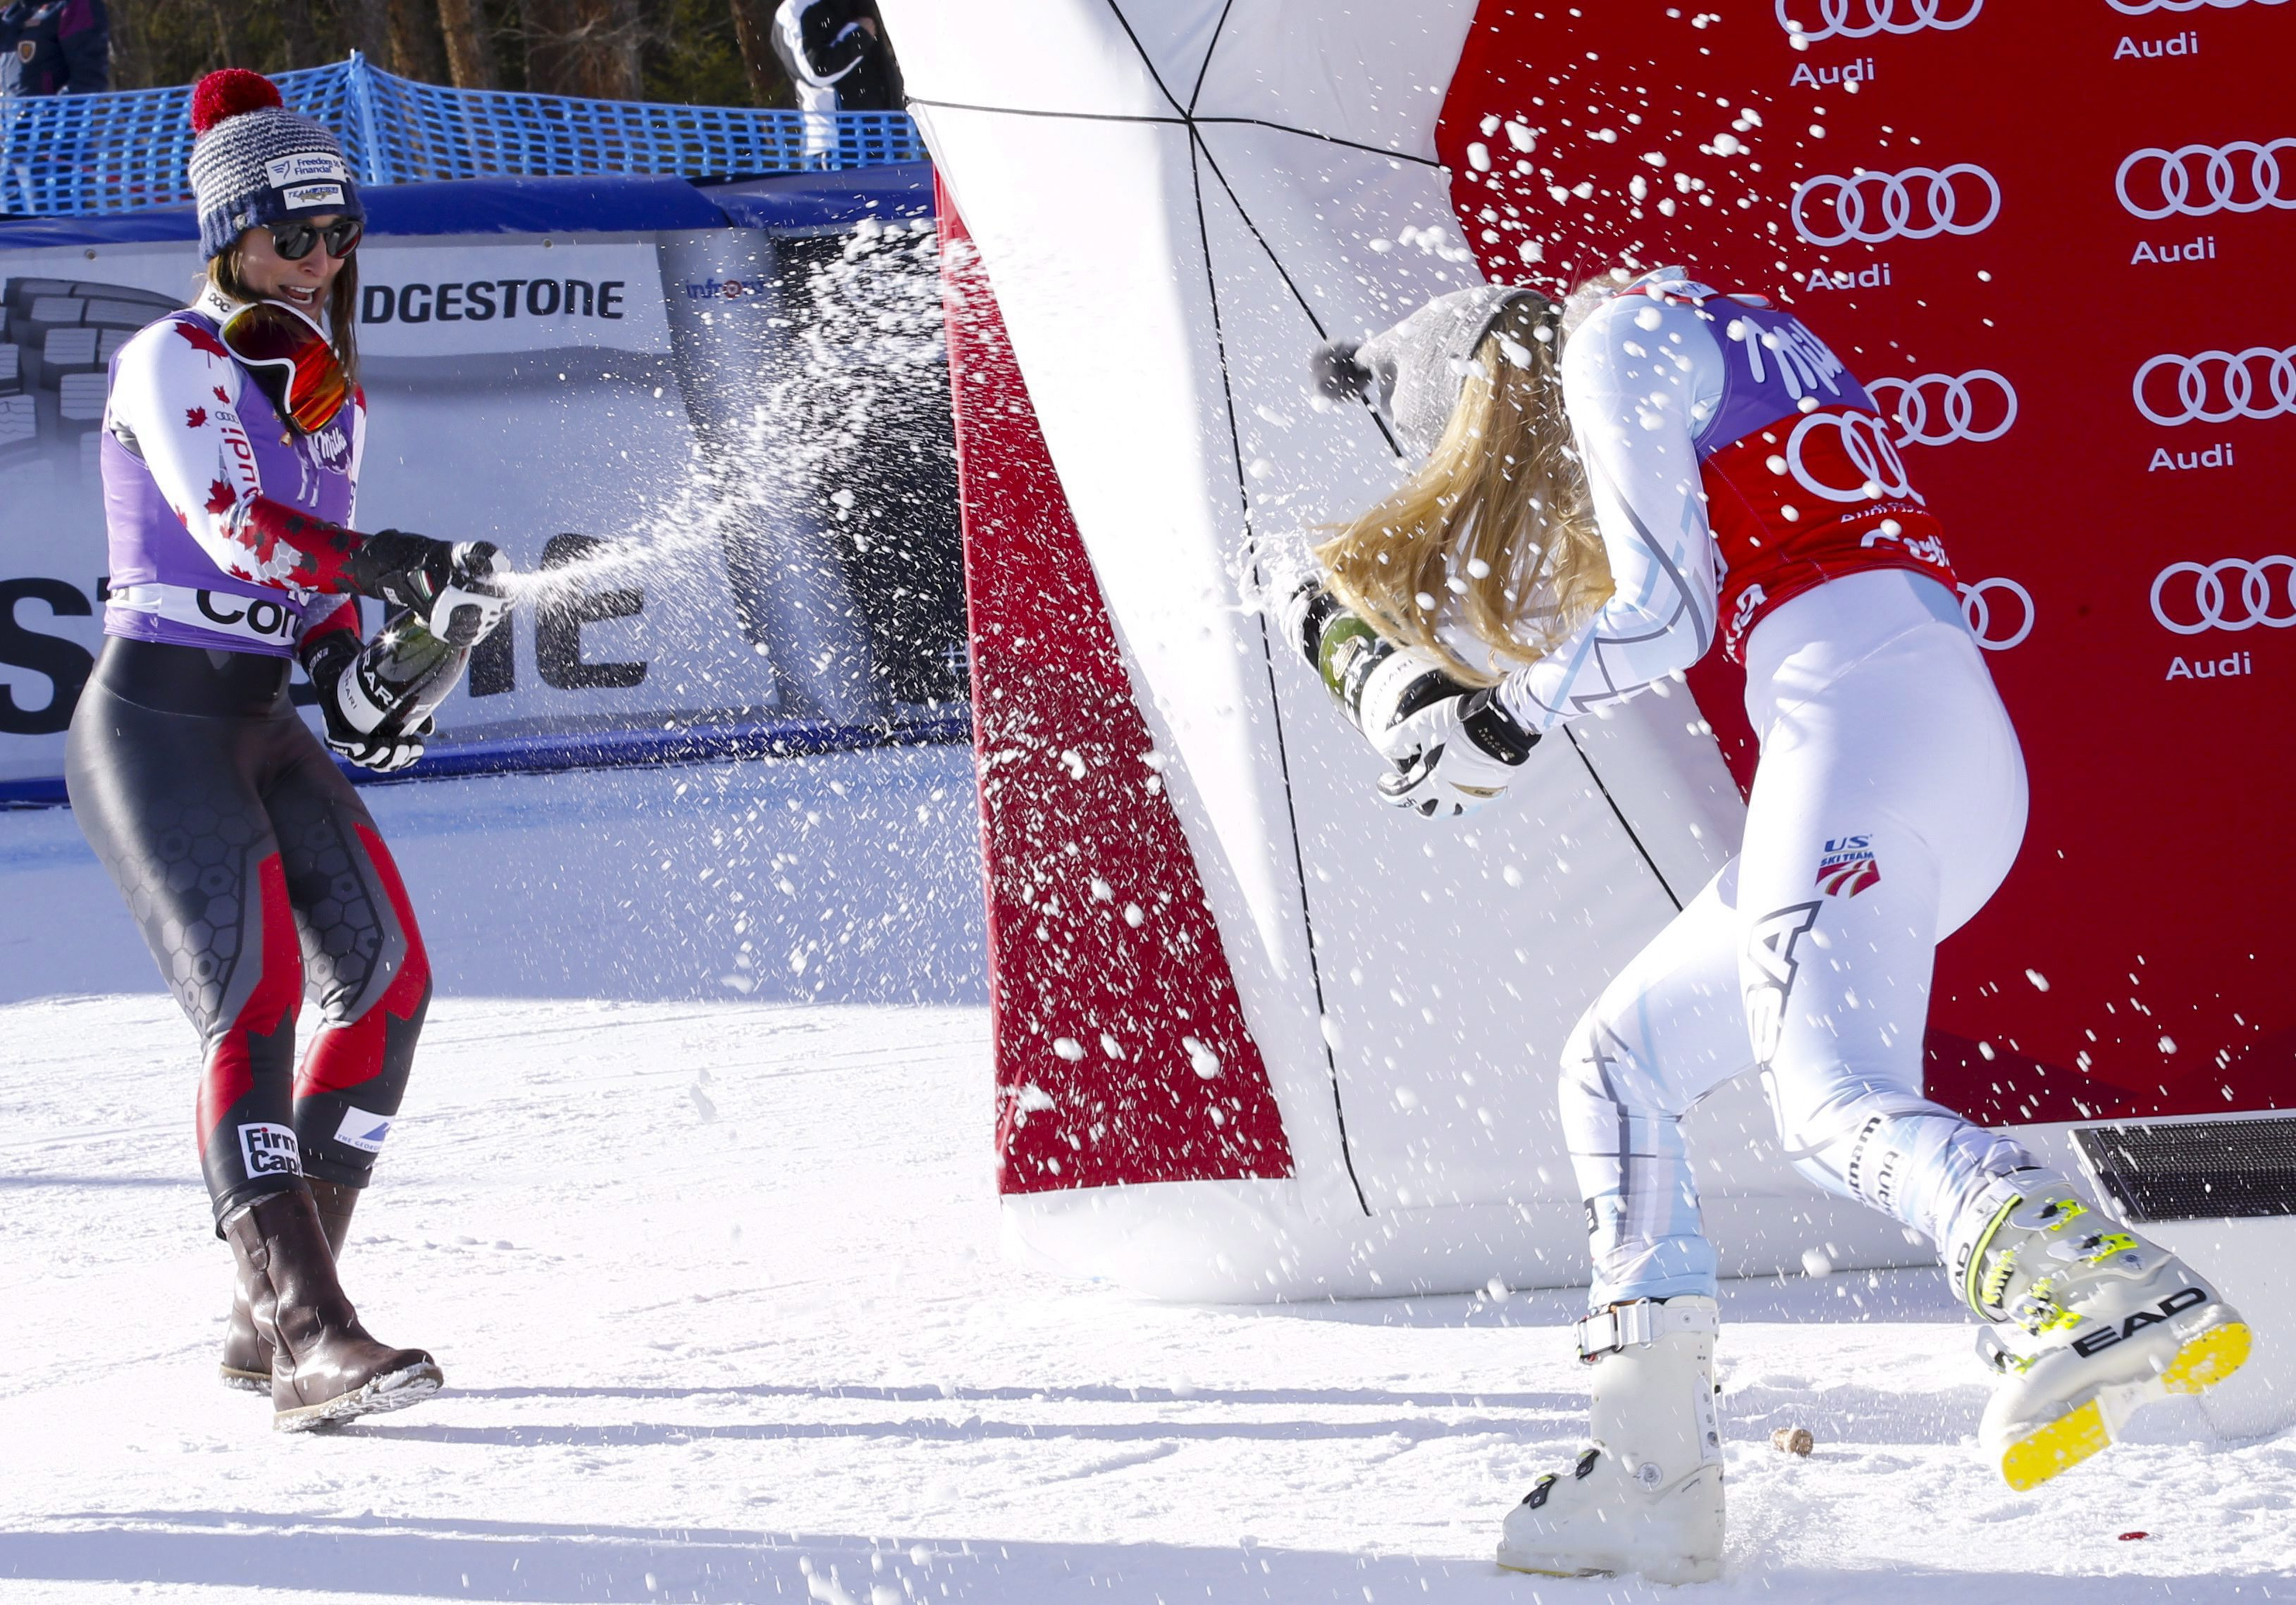 Lindsey Vonn, of the United States, right, sprays sparkling wine with second placed Canada's Larisa Yurkiw, after winning an alpine ski, women's World Cup downhill, in Cortina D'Ampezzo, Italy, Saturday, Jan. 23, 2016. (AP Photo/Armando Trovati)